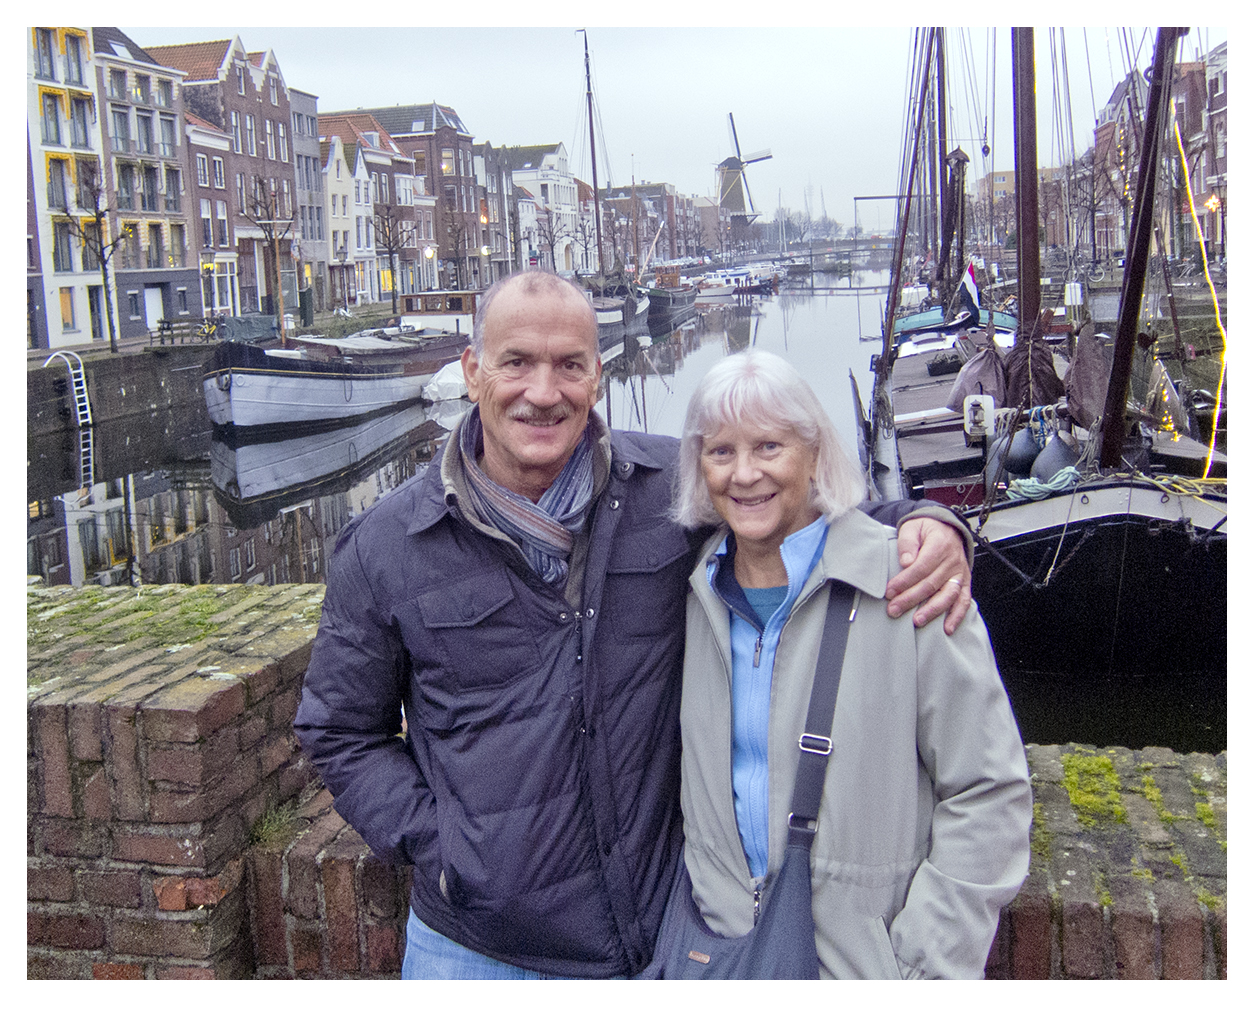 Betsy and Mark Amsterdam